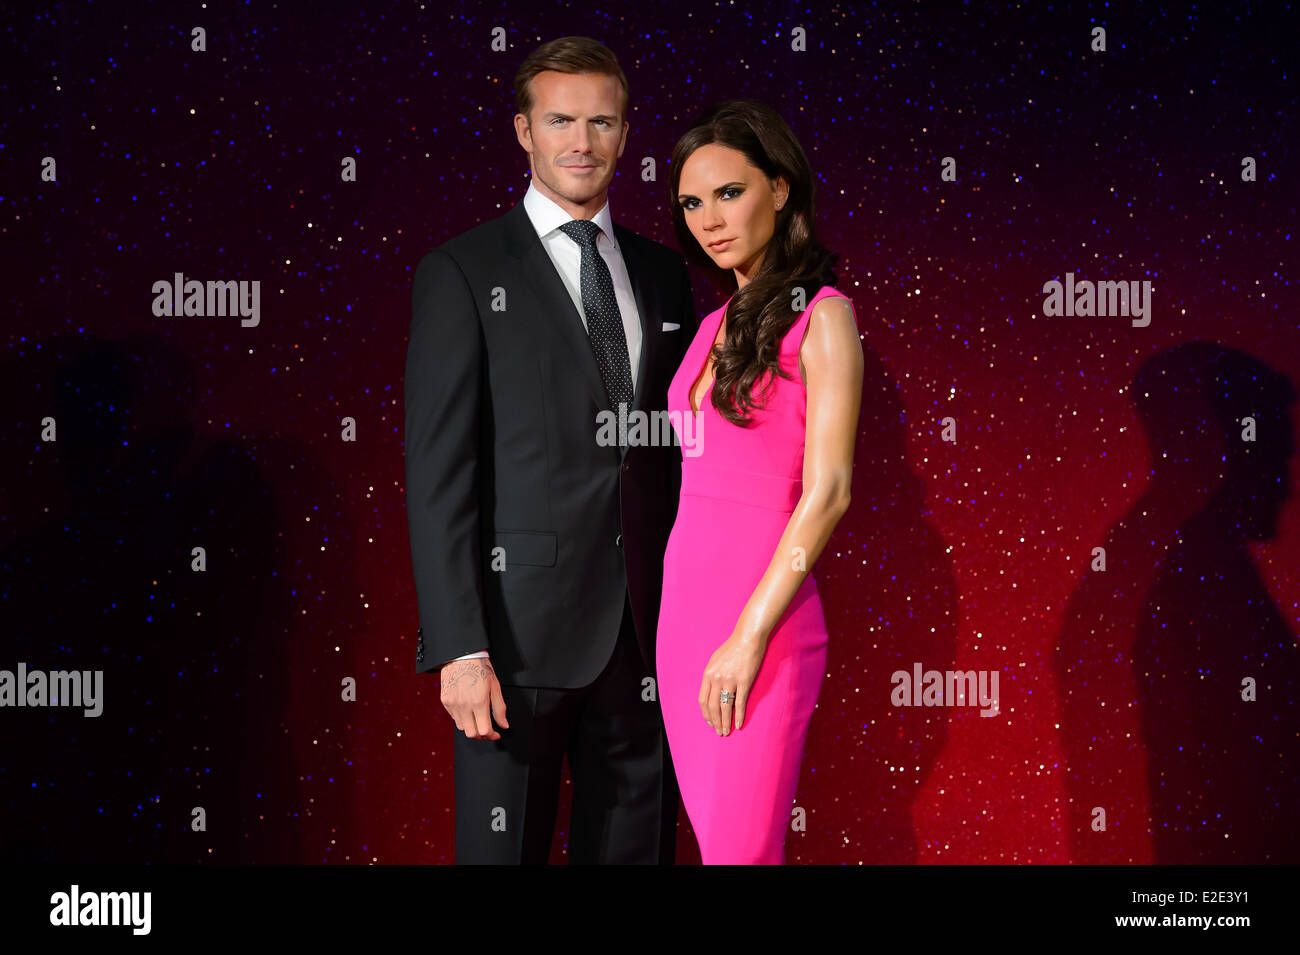 9d6fa2d6933 The new wax figures of David Beckham and Victoria Beckham are unveiled at  Madame Tussauds